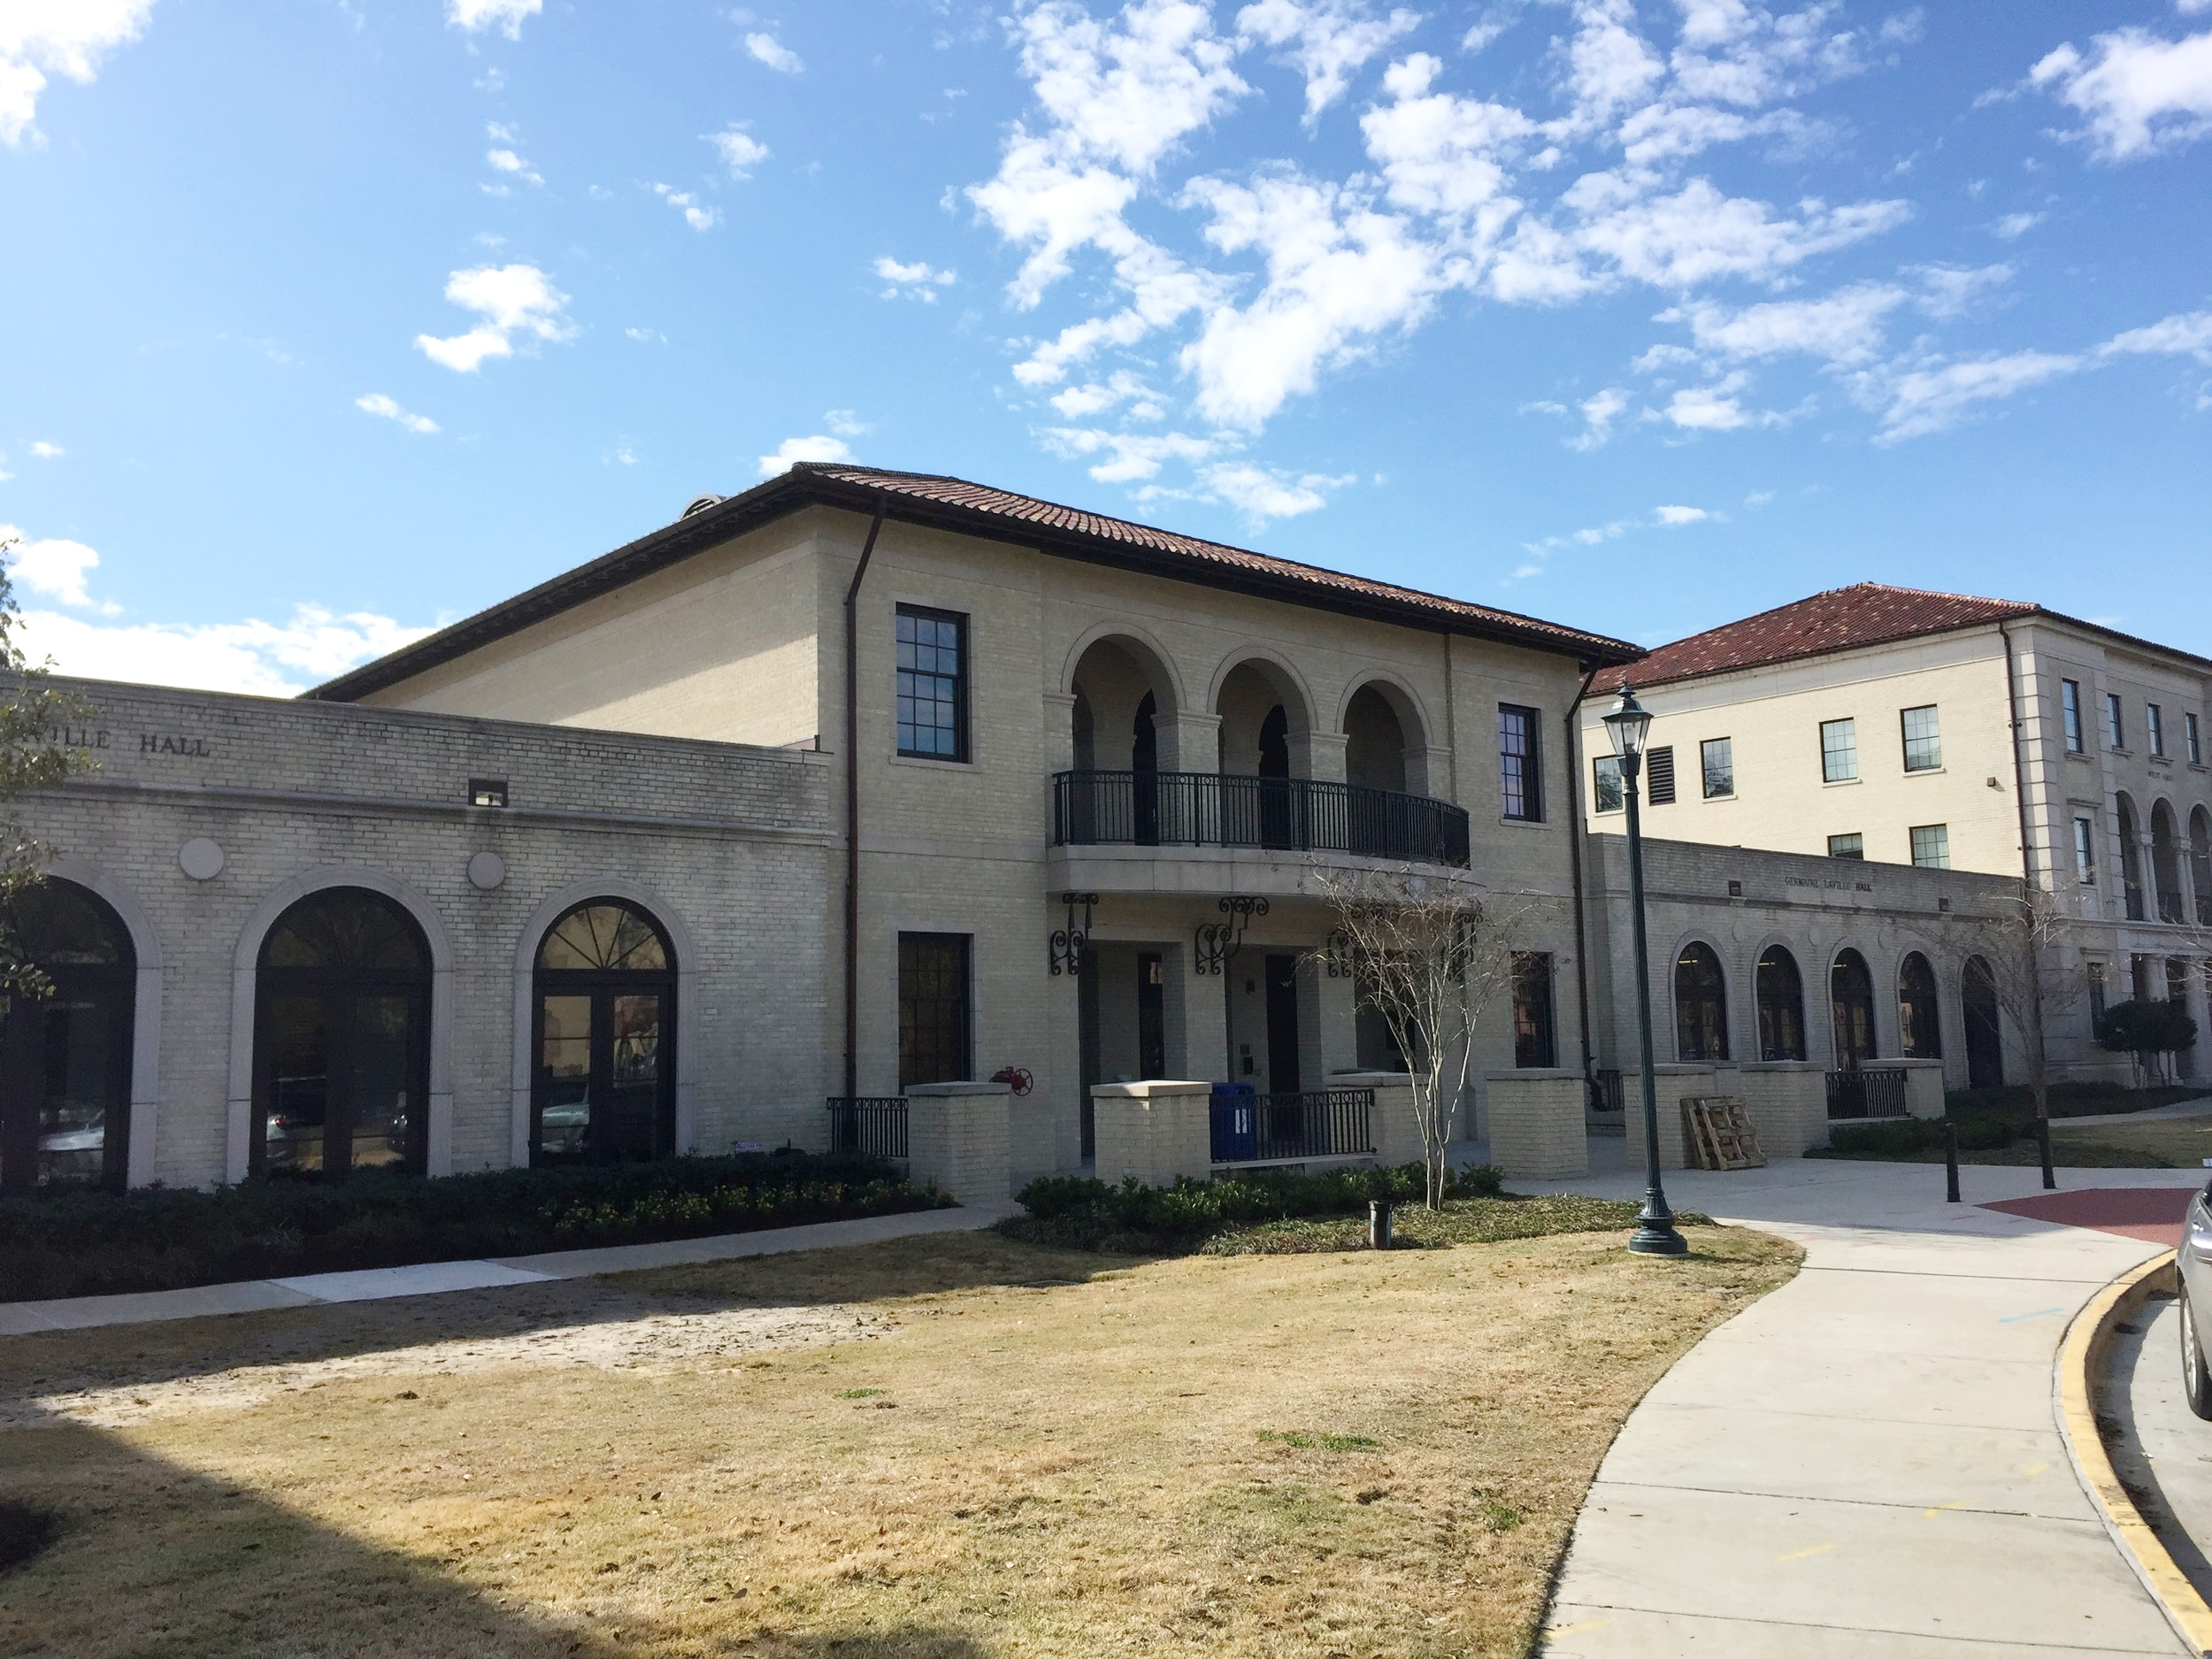 LSU Laville Honors Dormitory